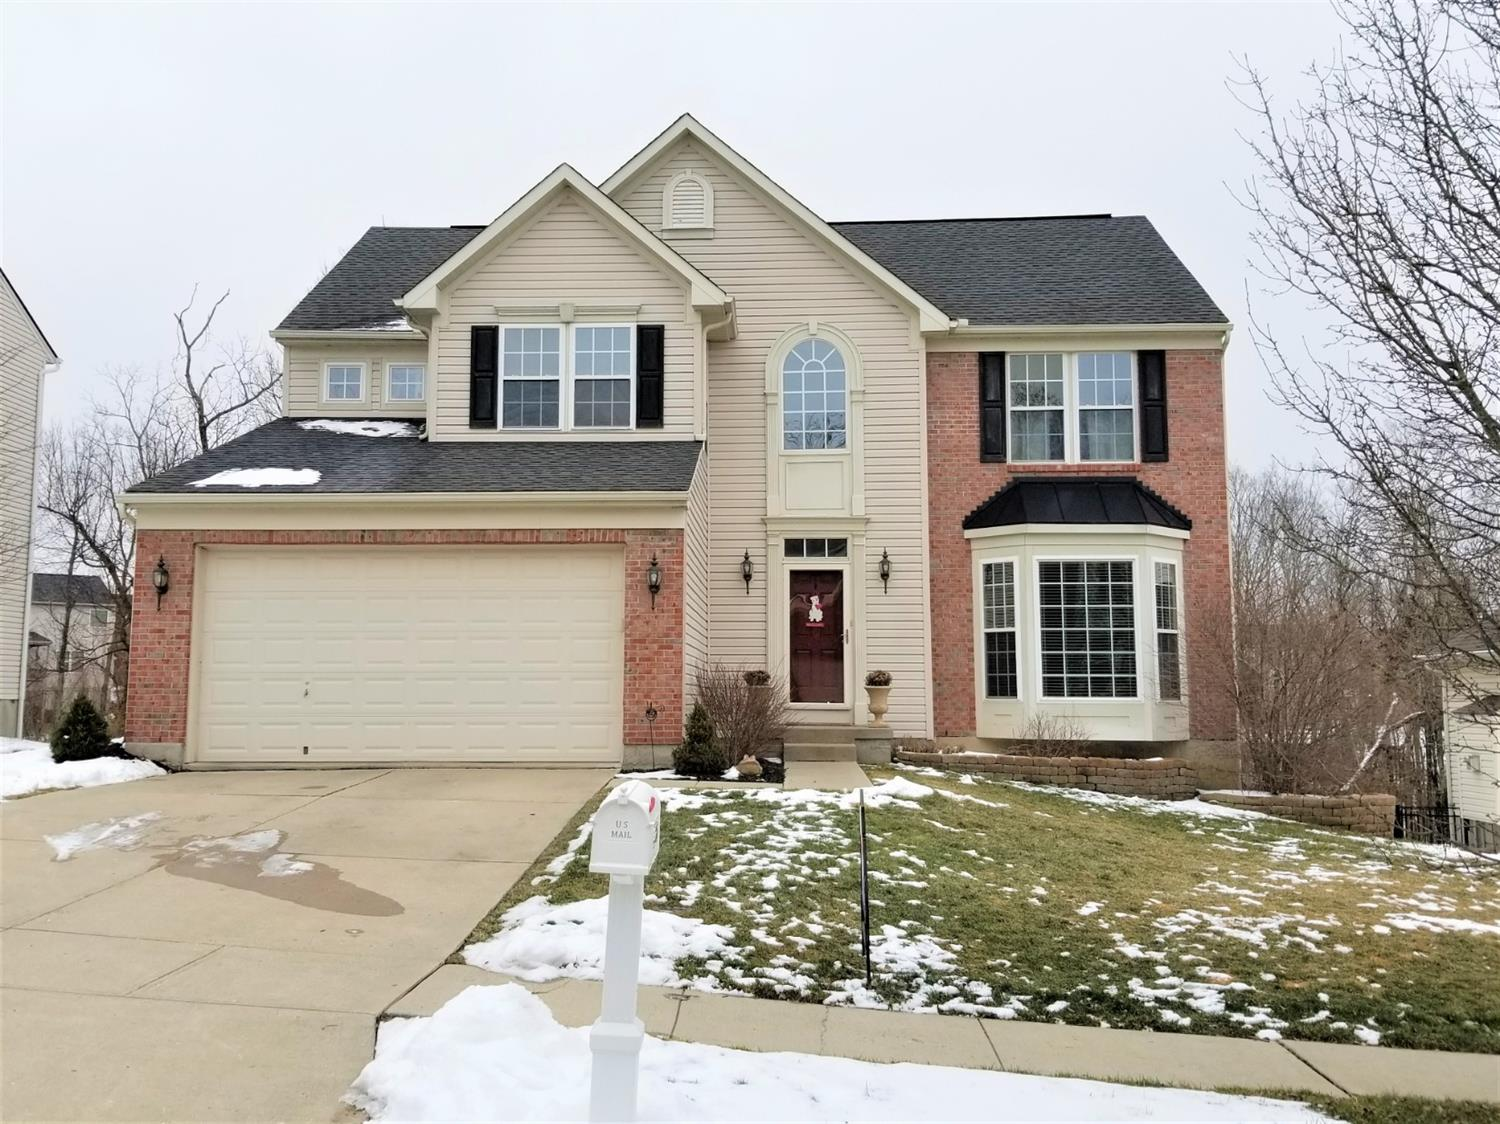 5186 Parkvalley Ct Monfort Hts., OH